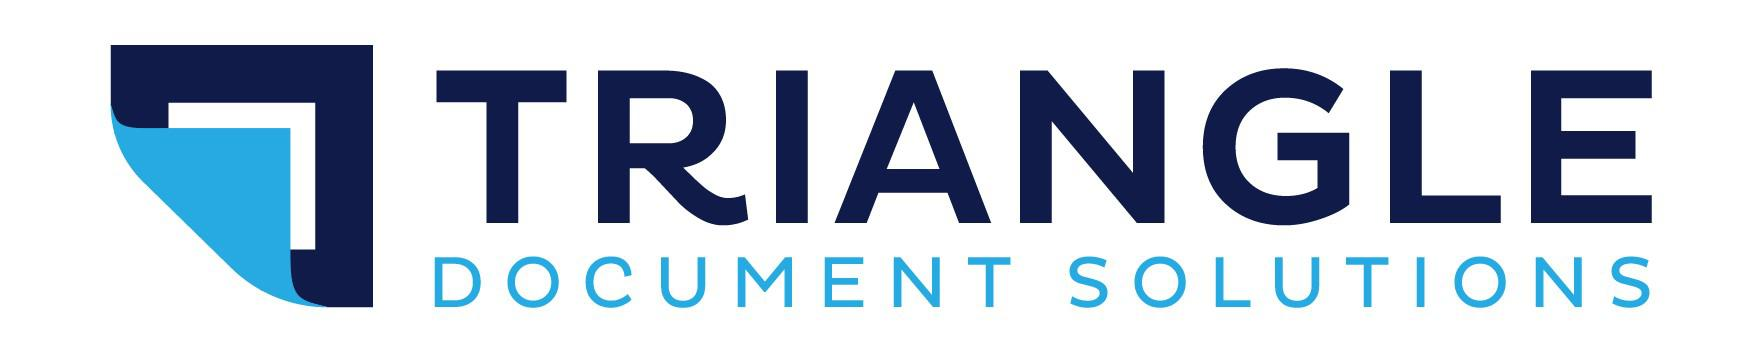 Triangle Document Solutions Logo